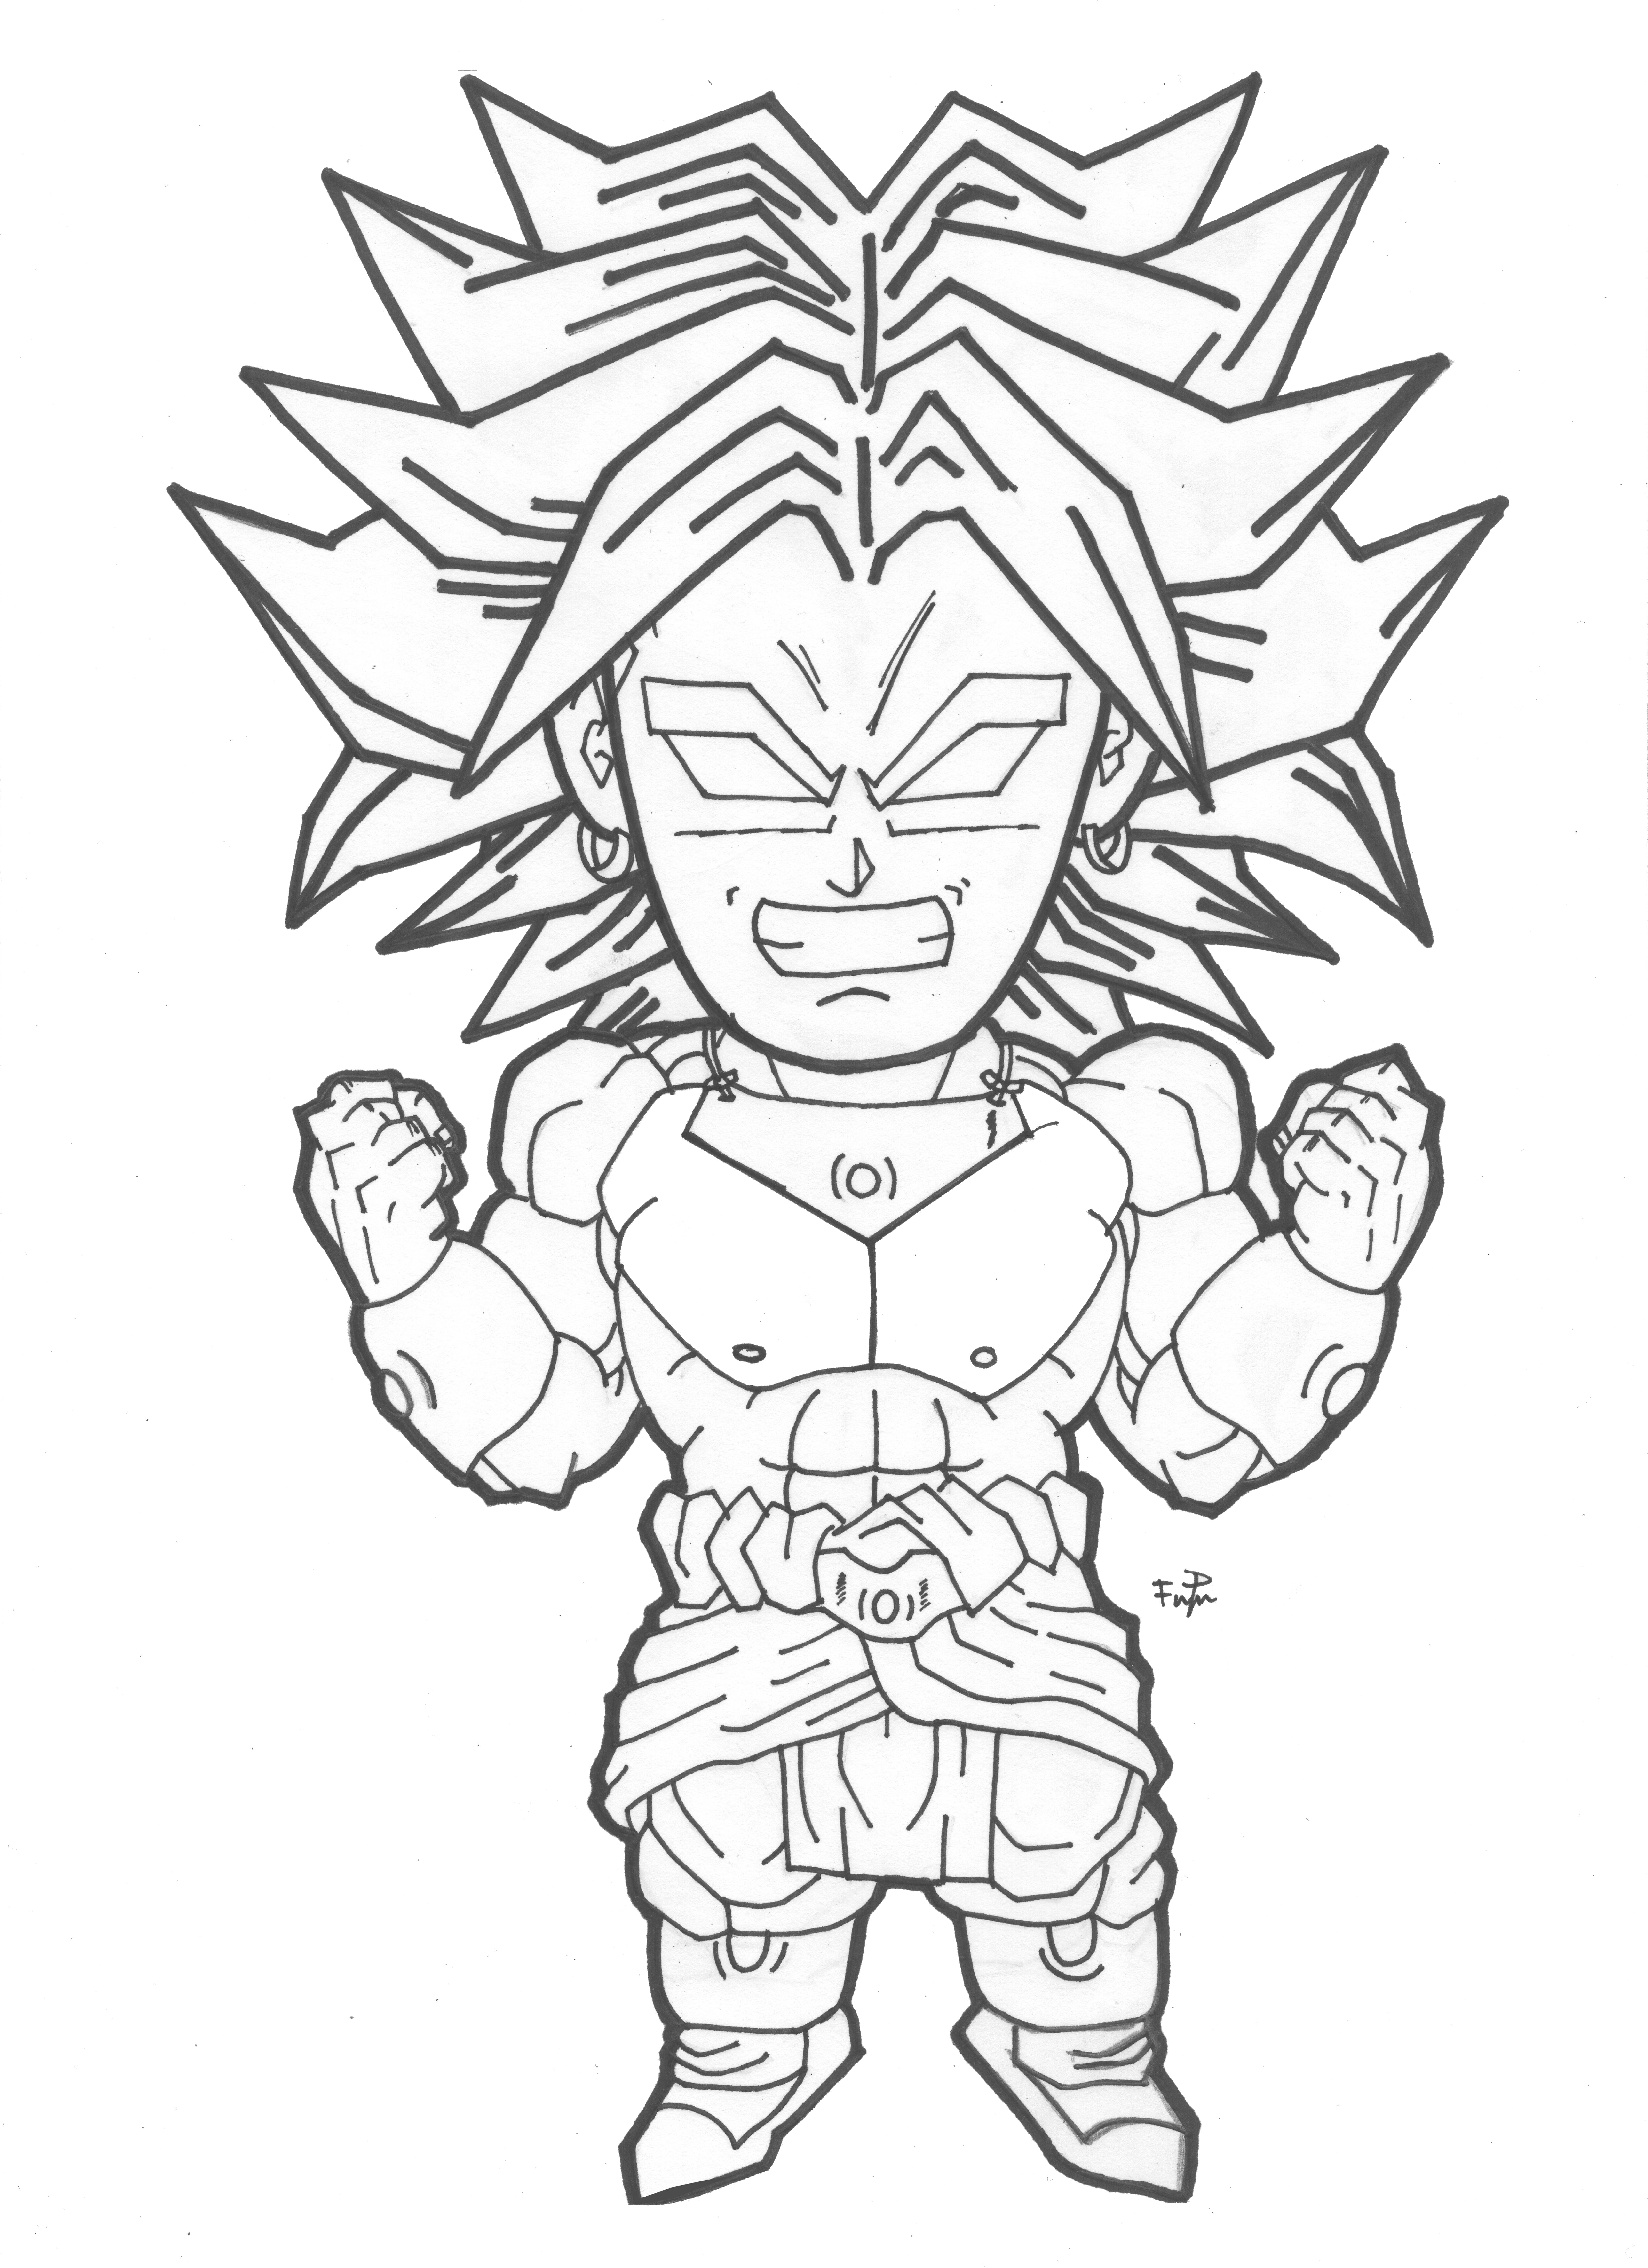 Dragon Ball Z Lineart : Chibi broly lineart by cheygipe on deviantart